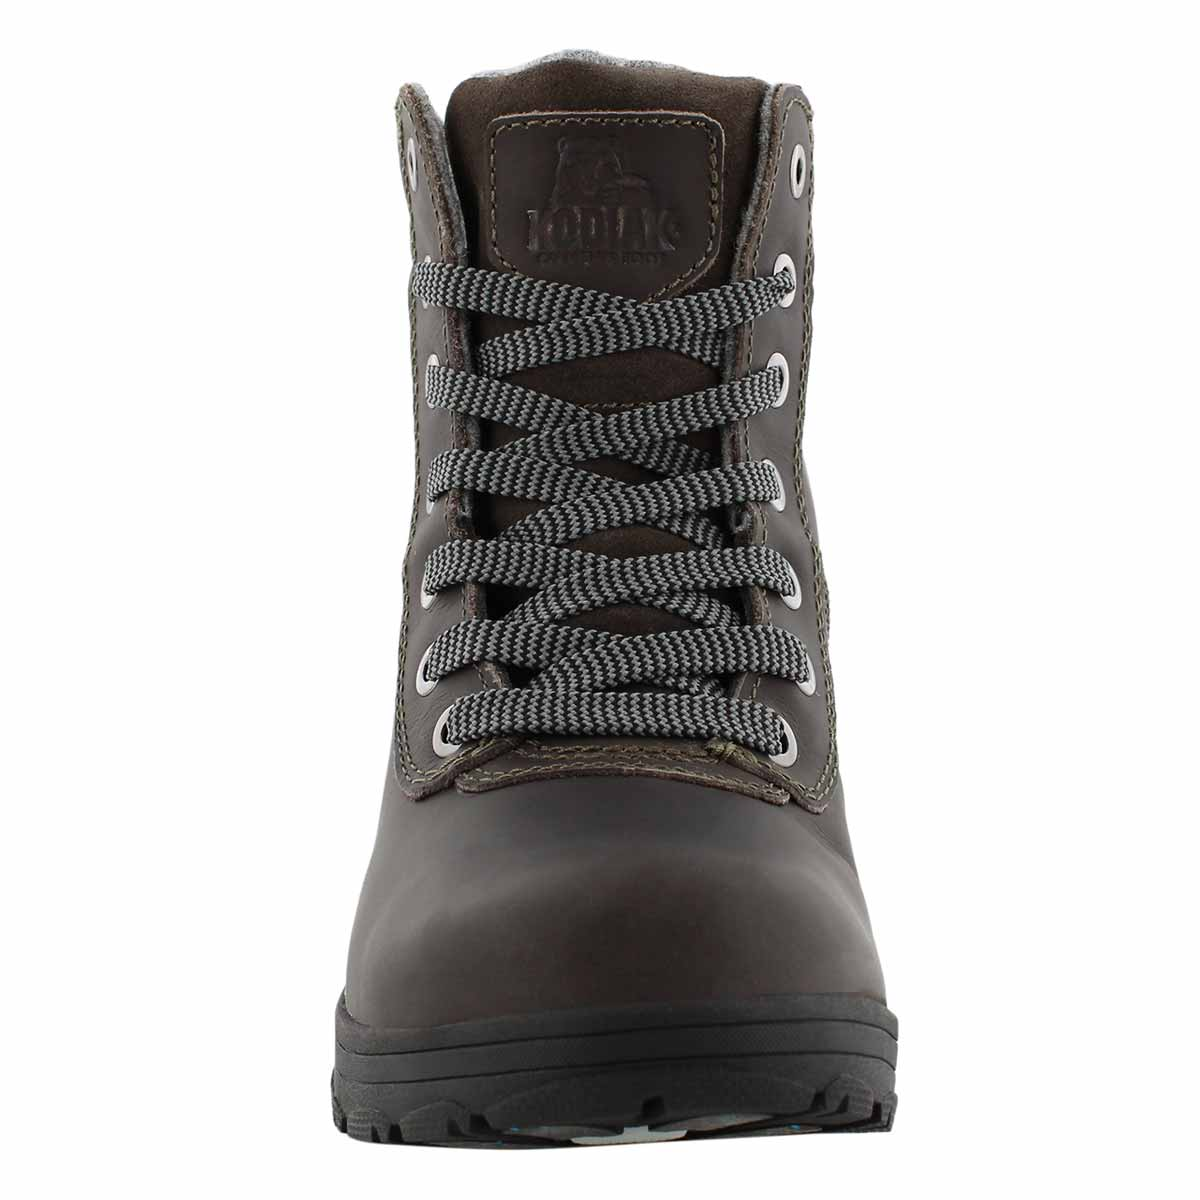 Lds Shari grey wtpf lace up winter boot